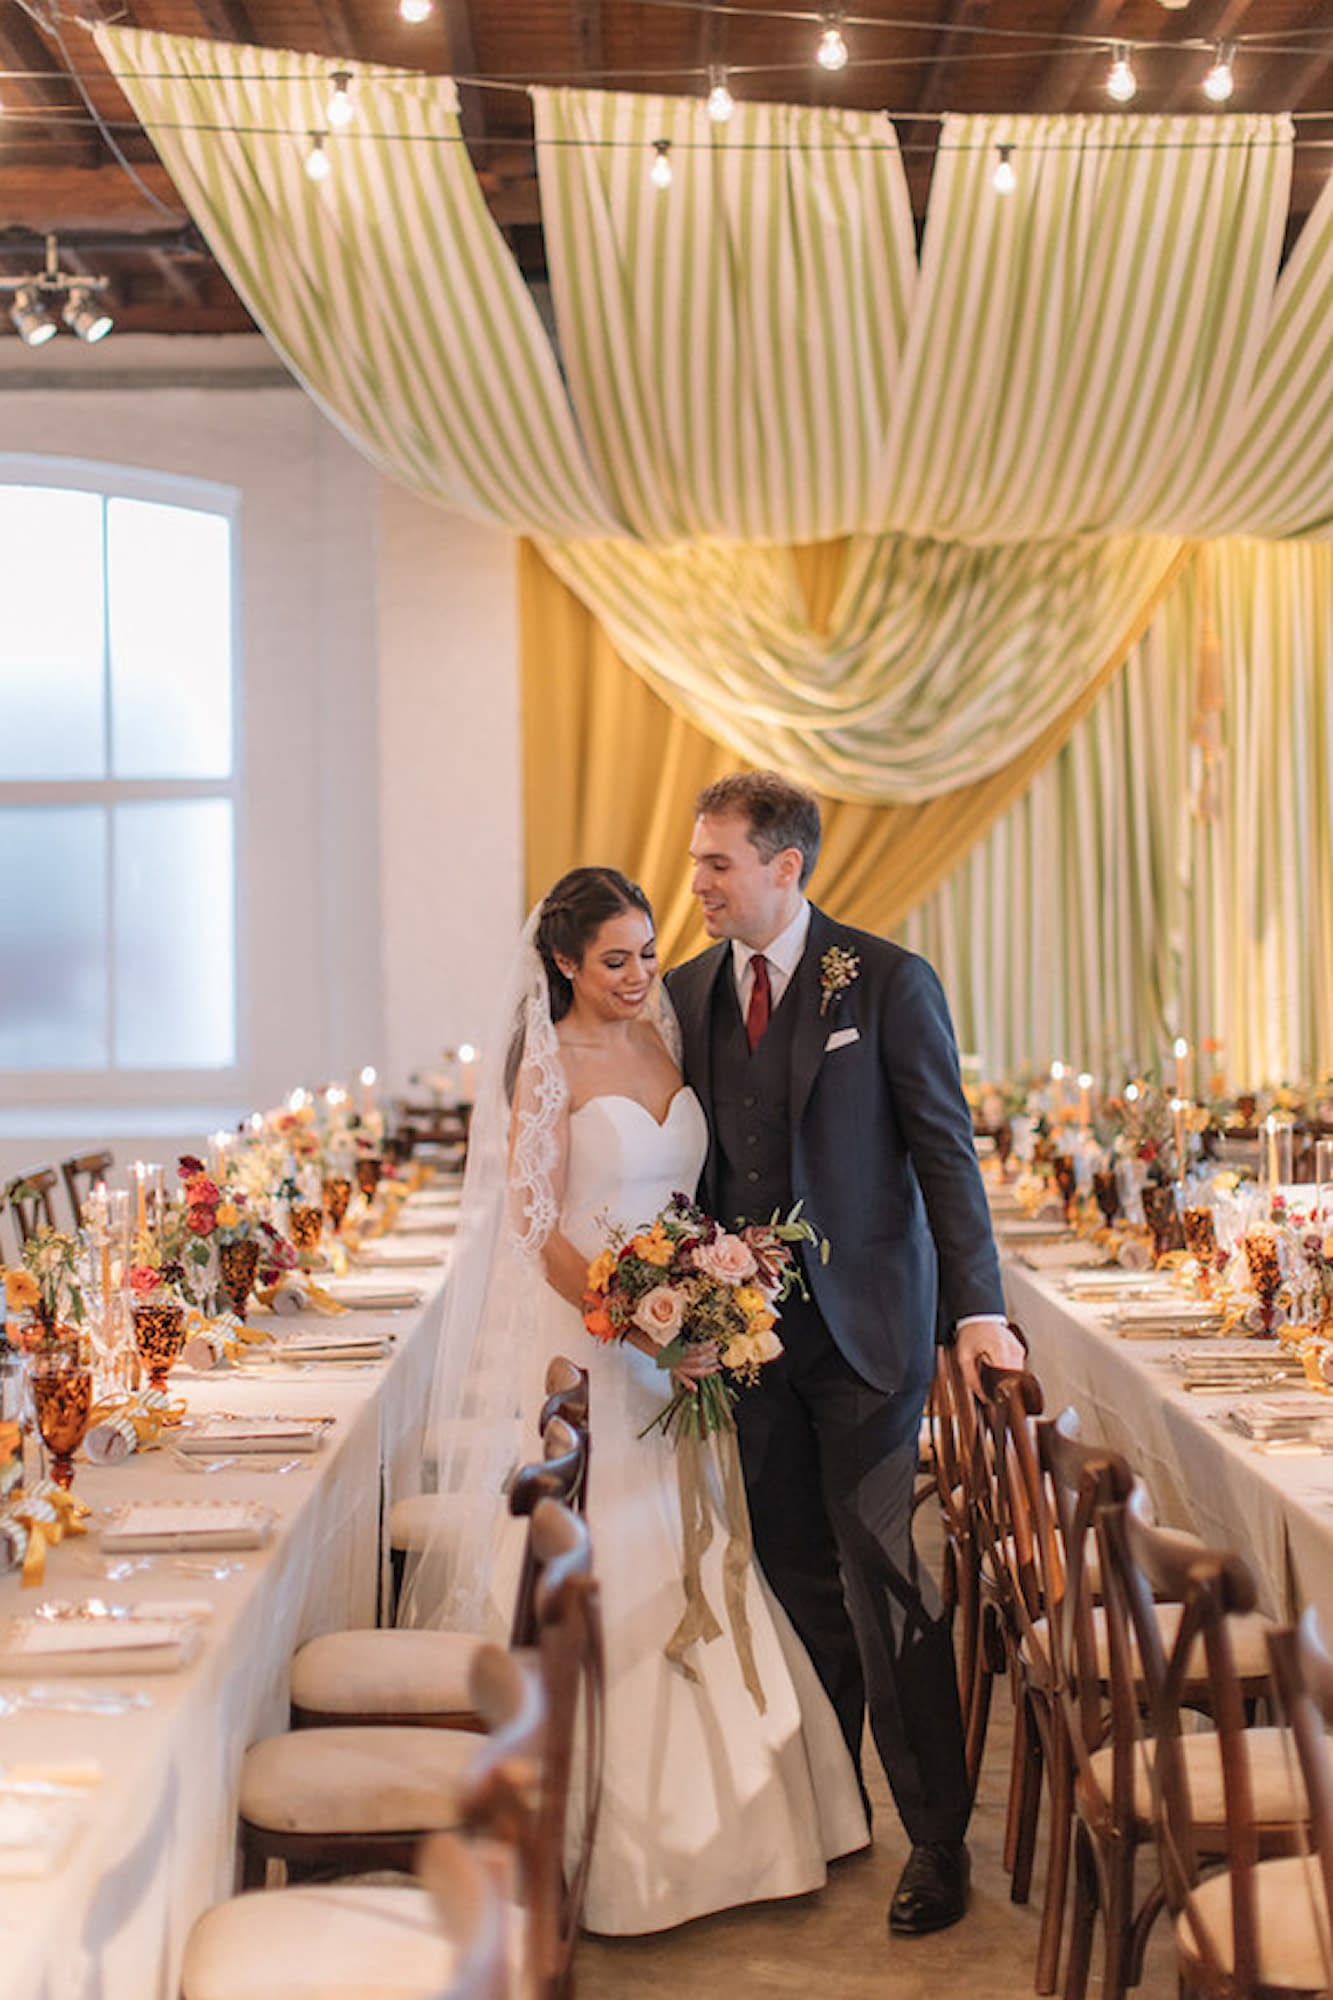 Bespoke wedding ceiling drapes and top table backdrop in green, white and mustard pictured with the bride and groom in the foreground